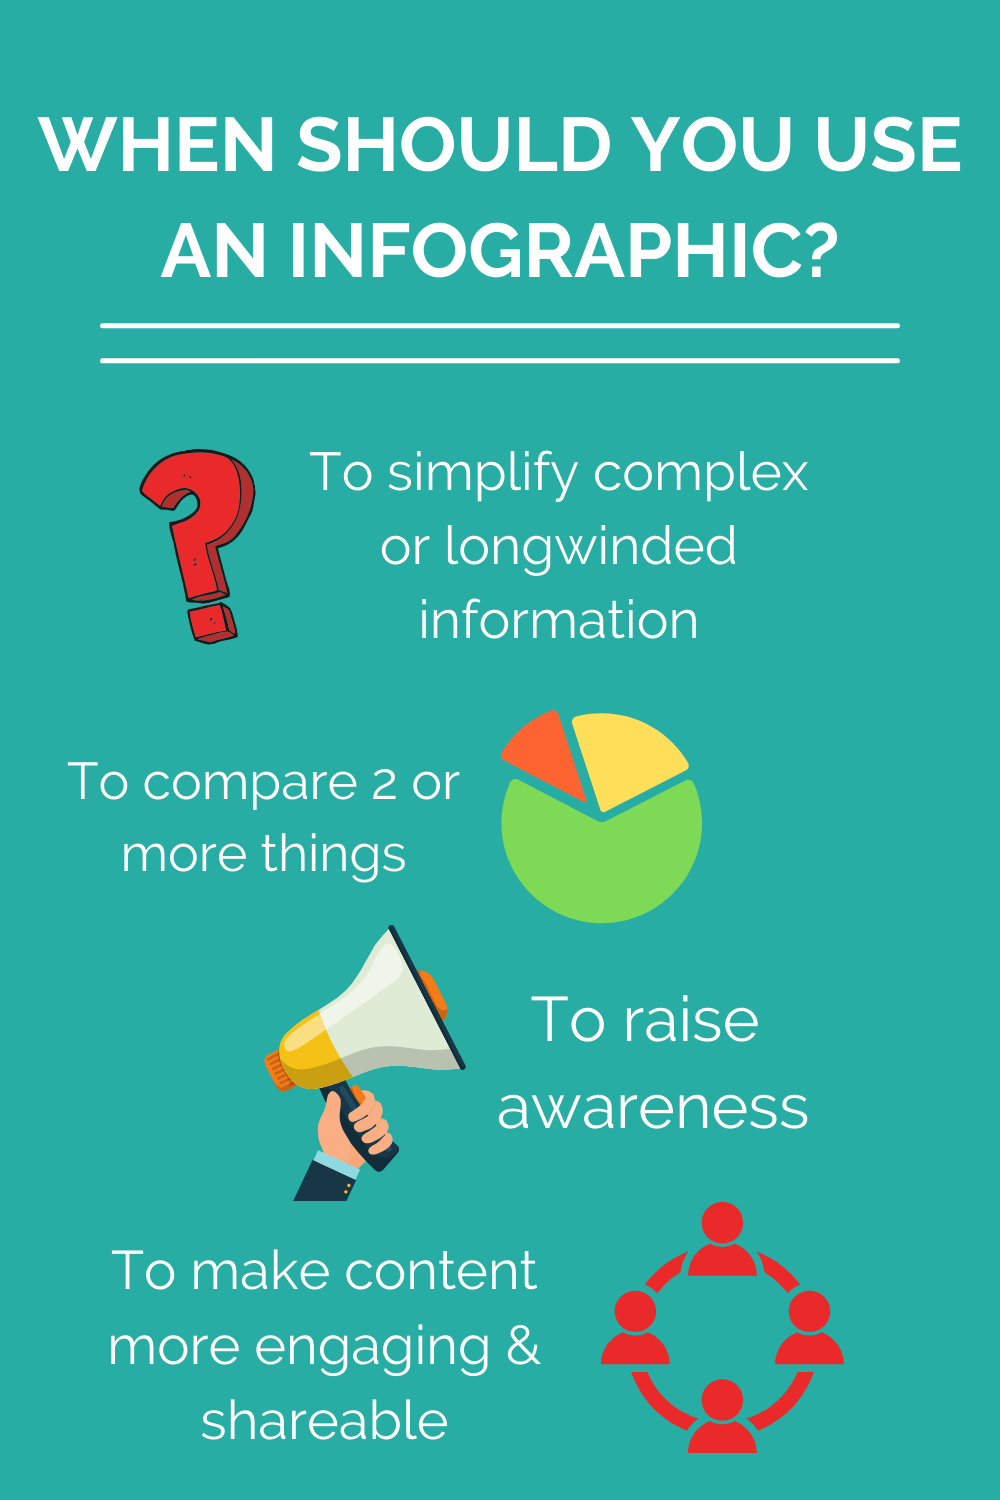 WHEN SHOULD YOU USE AN INFOGRAPHIC